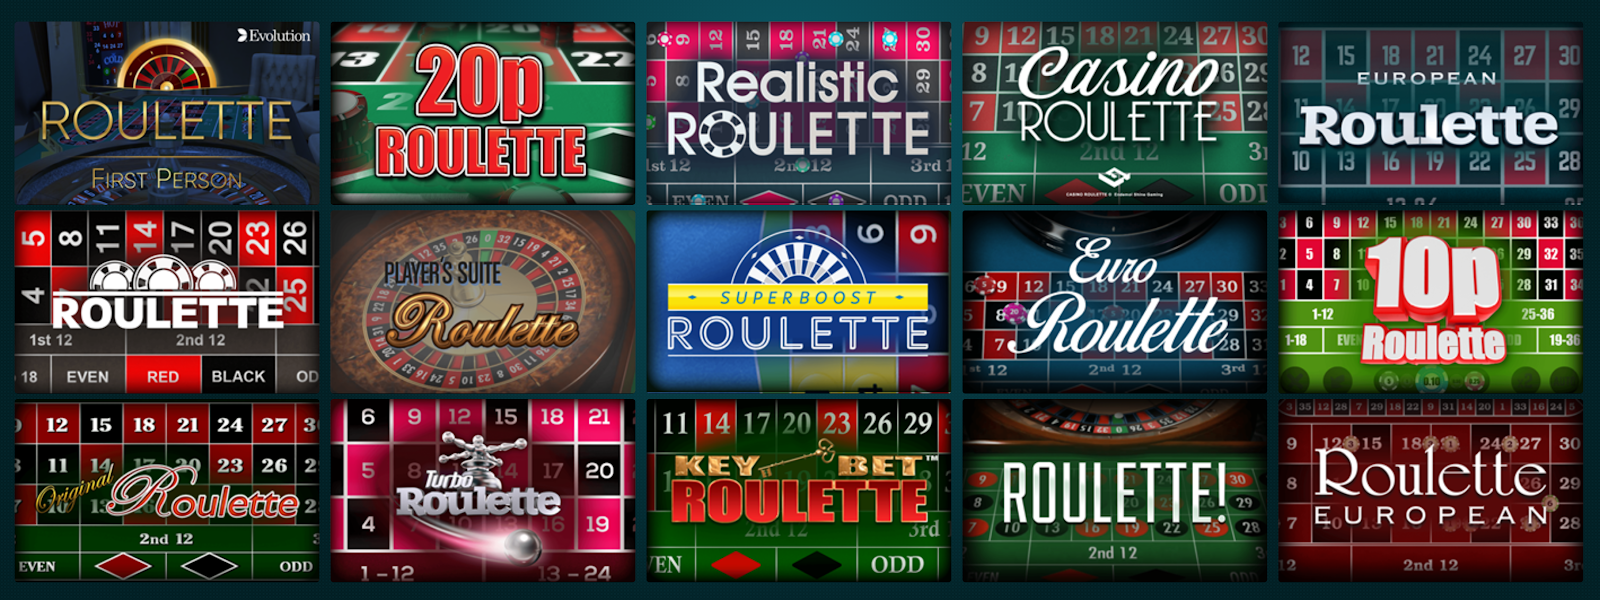 You can play lots of great roulette games at Grosvenor Casinos